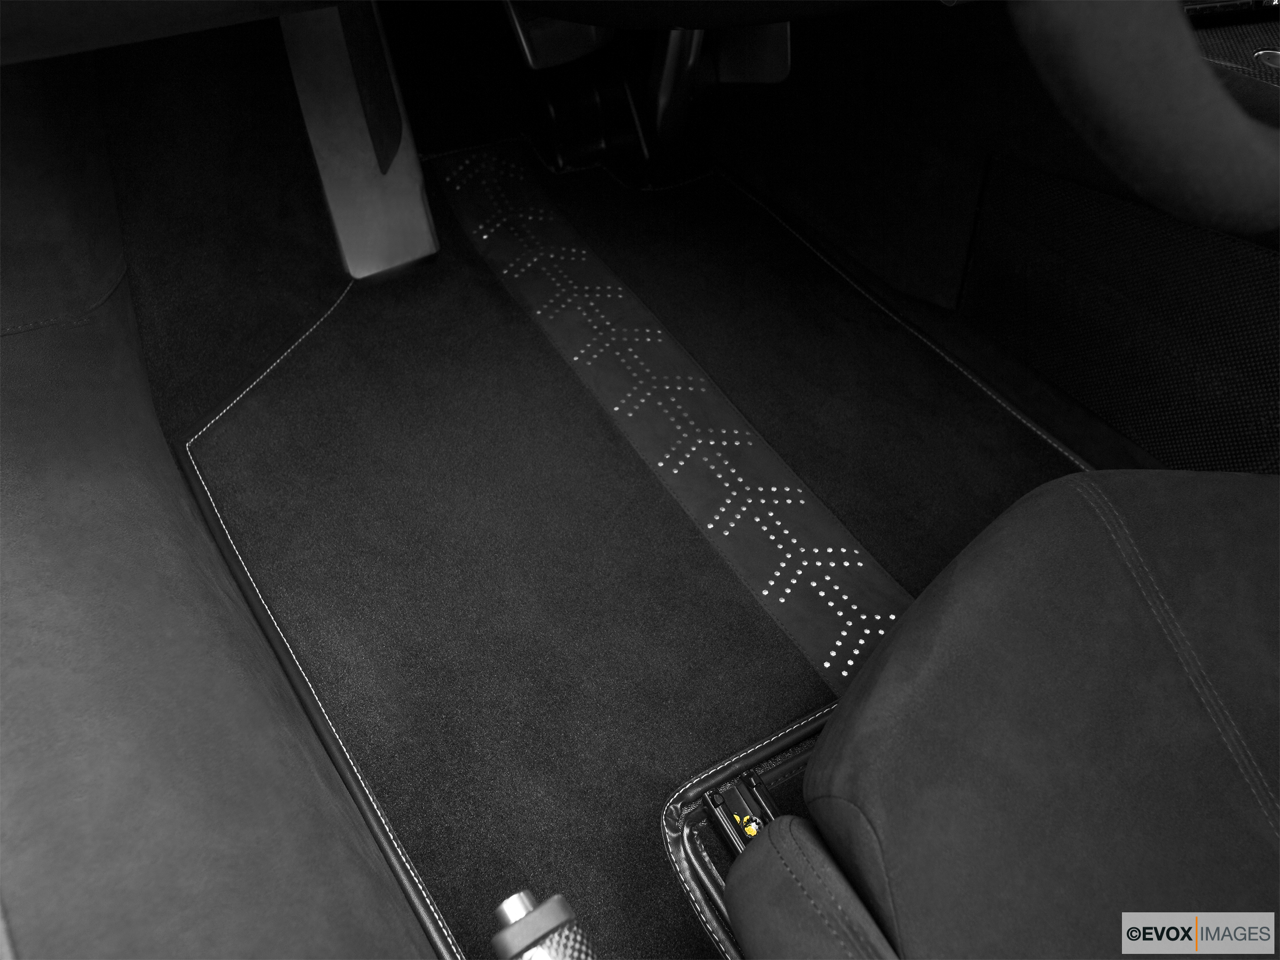 2010 Lamborghini Murcielago LP 640 Super Veloce Driver's floor mat and pedals. Mid-seat level from outside looking in.